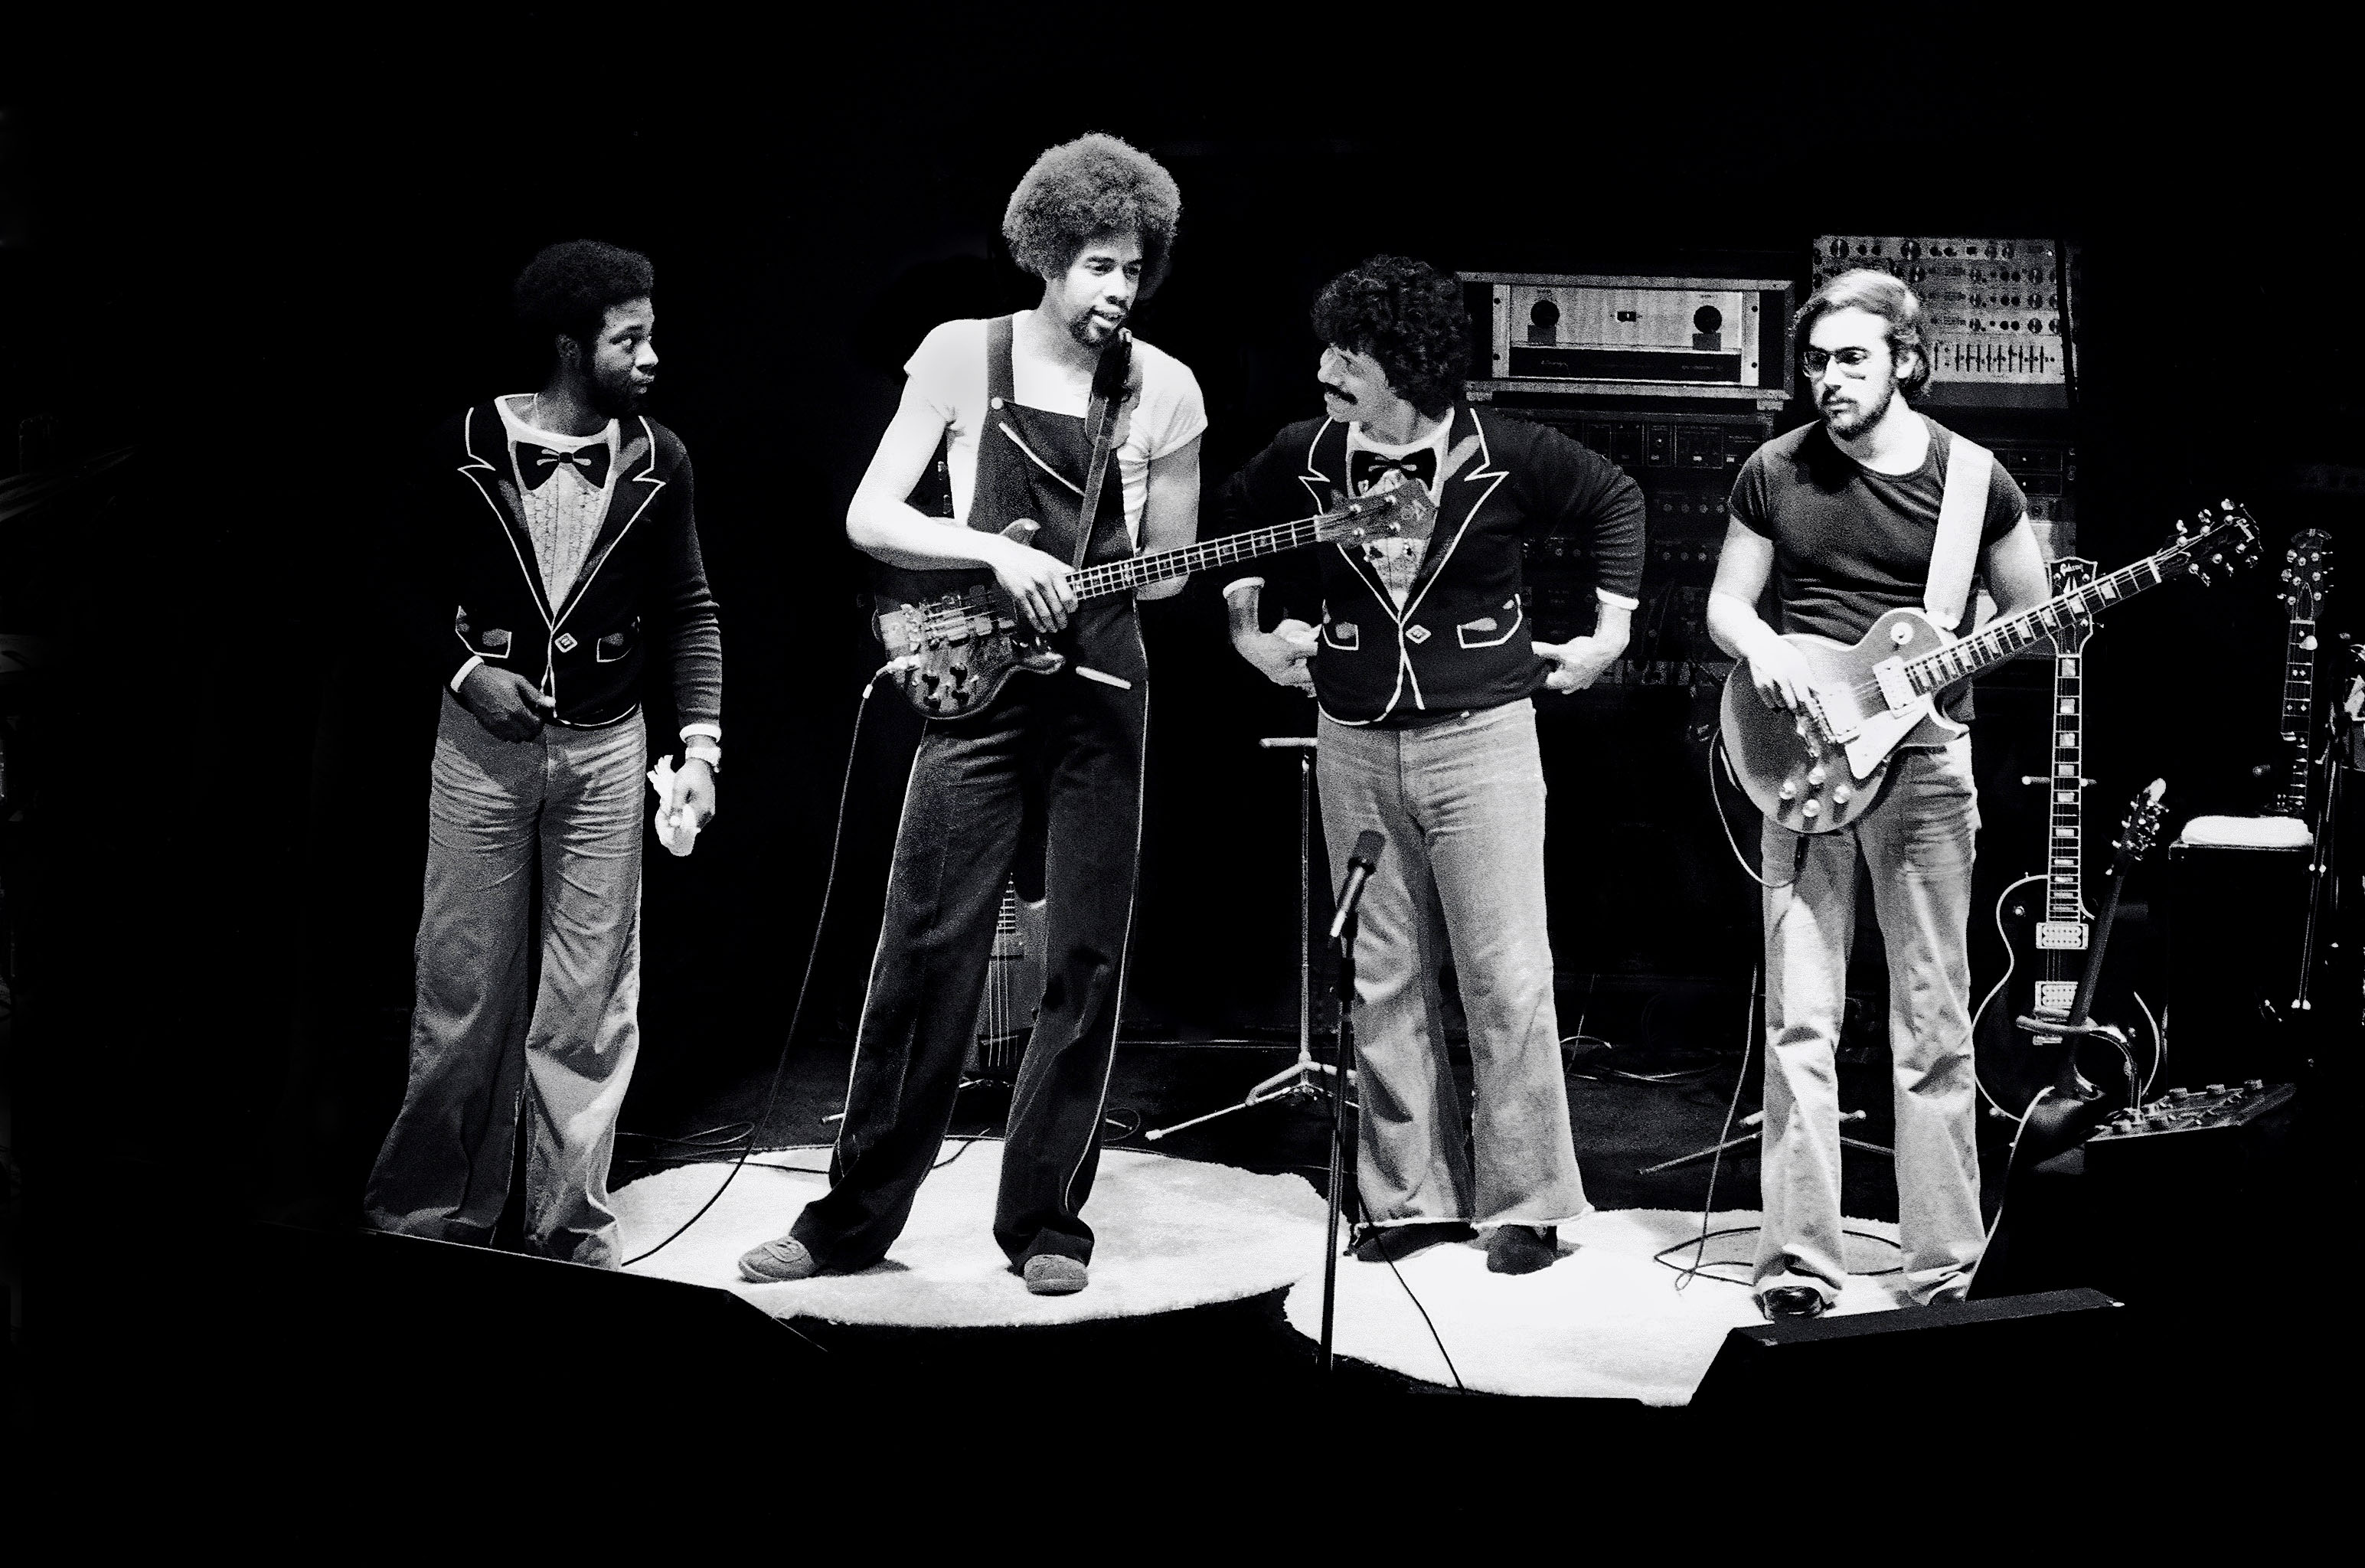 Black and white photo of the Return to Forever band on stage.